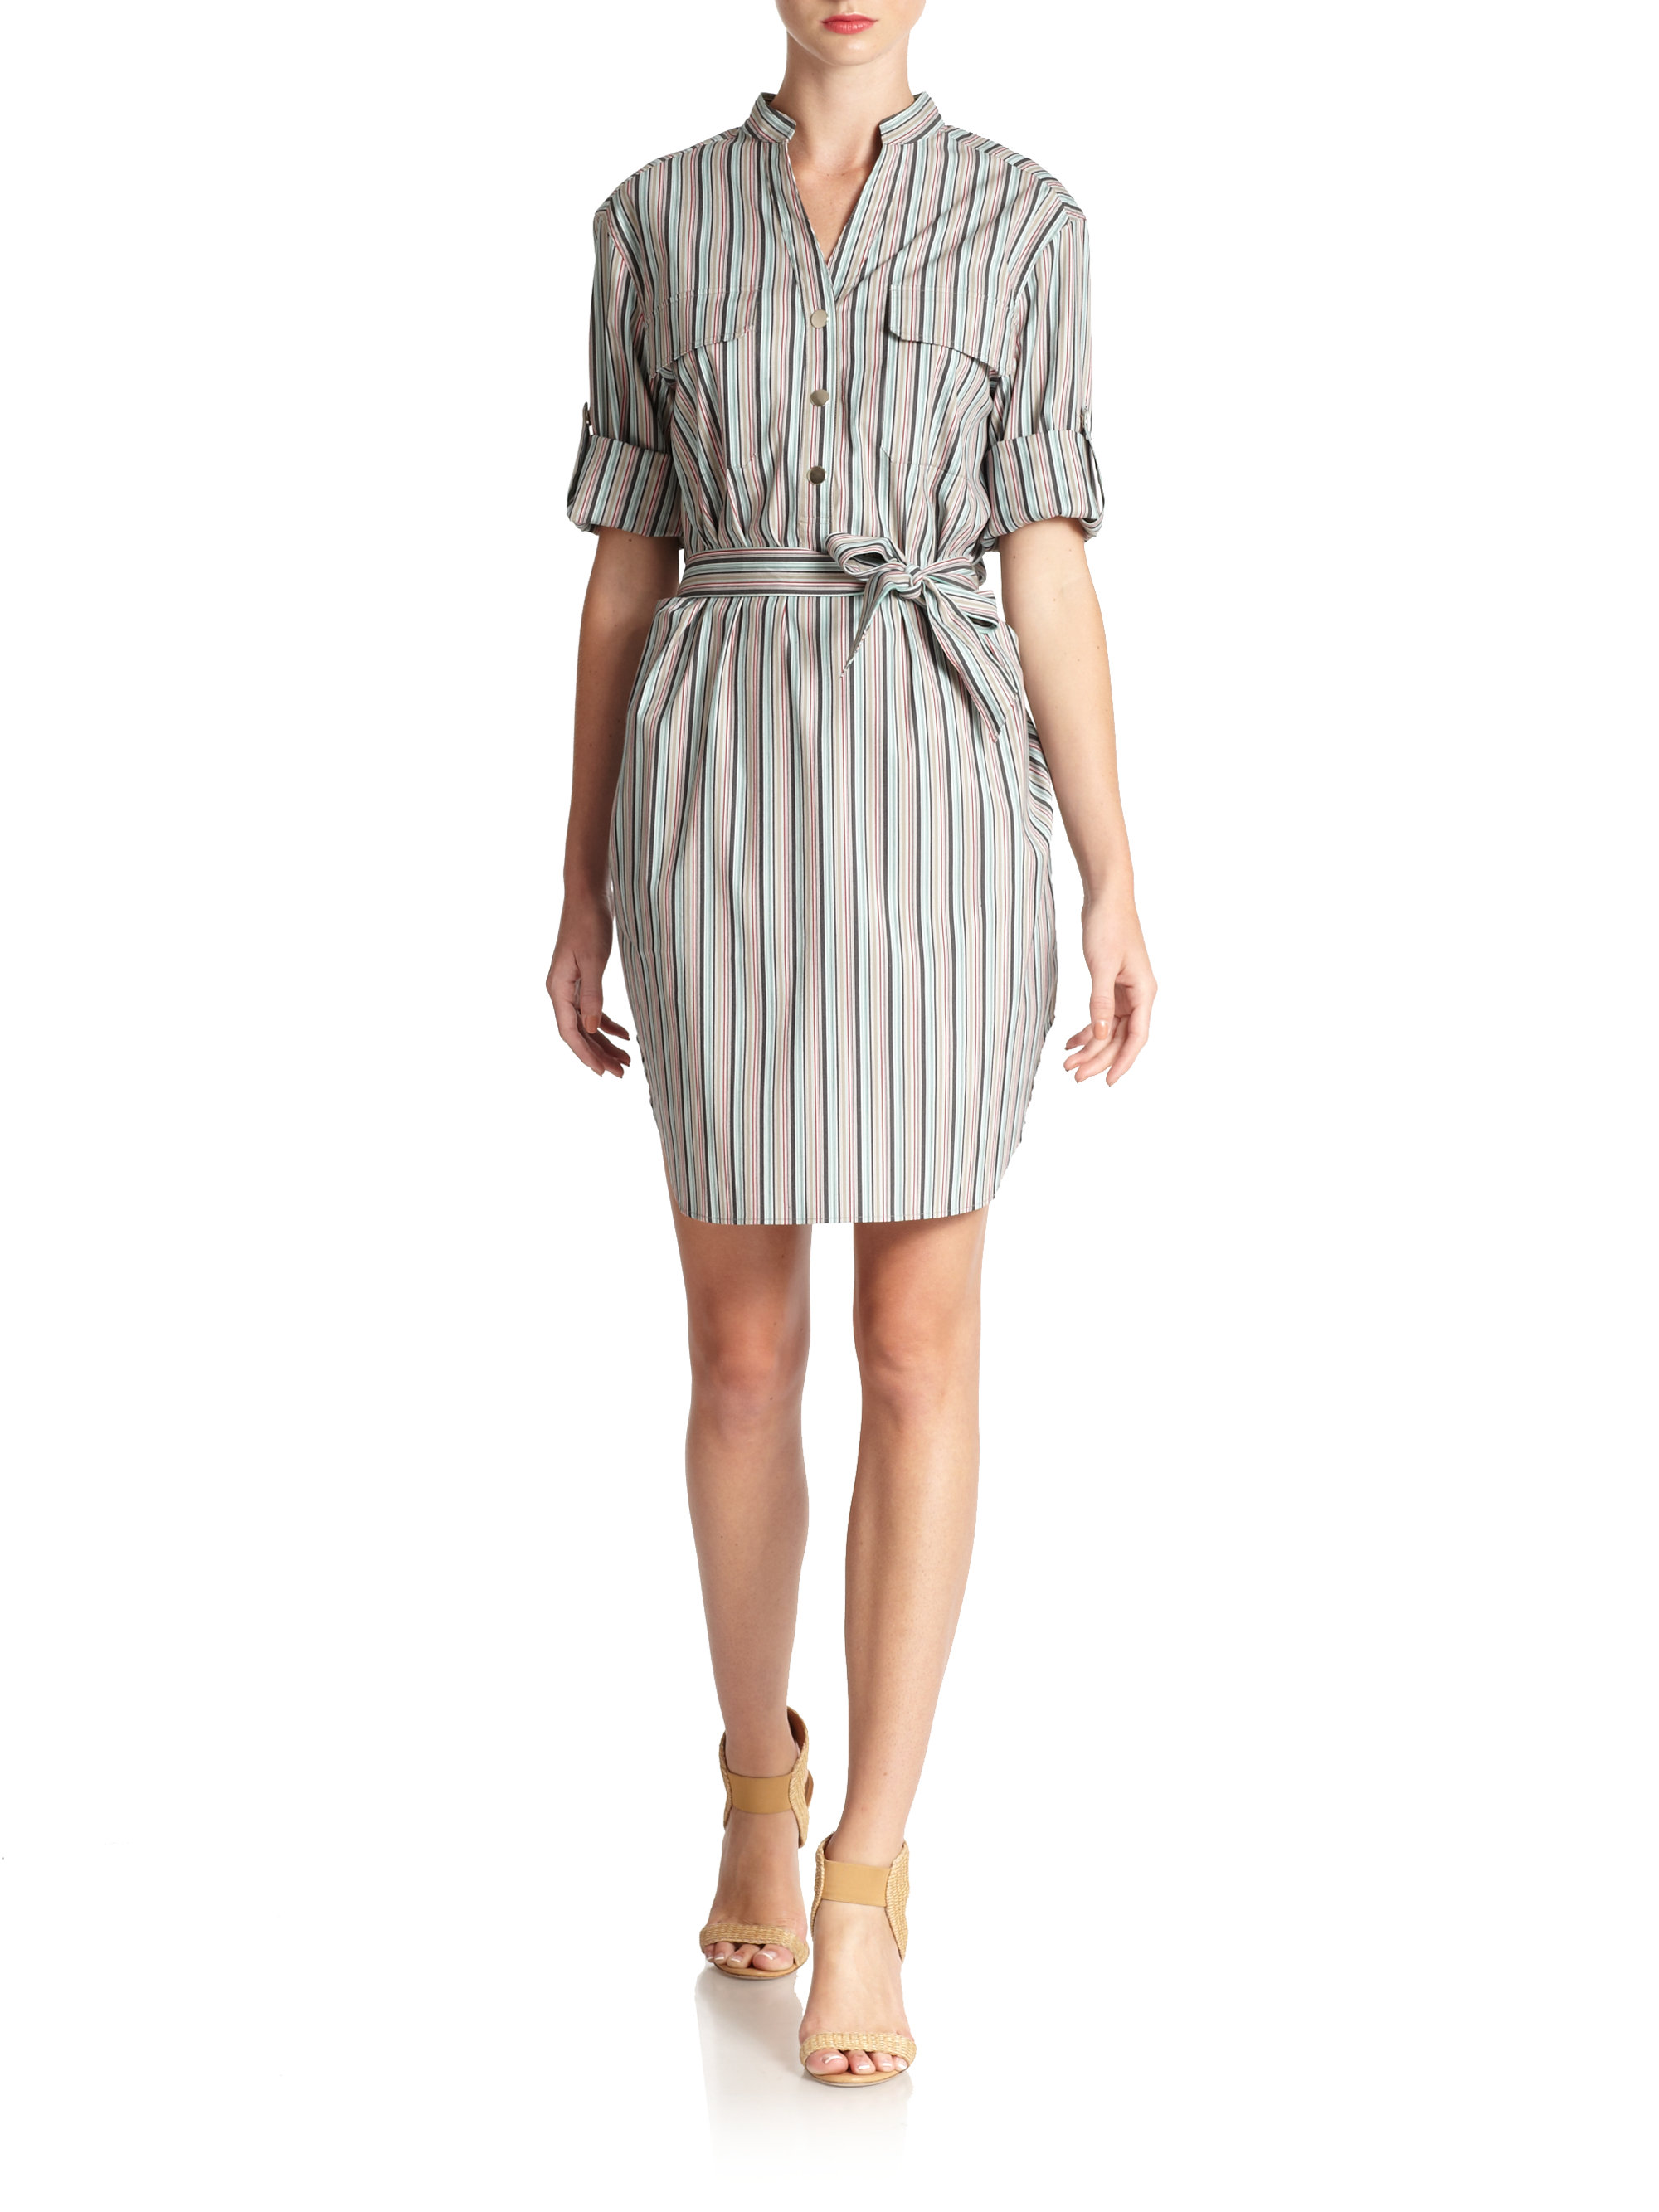 Lafayette 148 new york striped shirt dress in gray multi for New york and company dress shirts